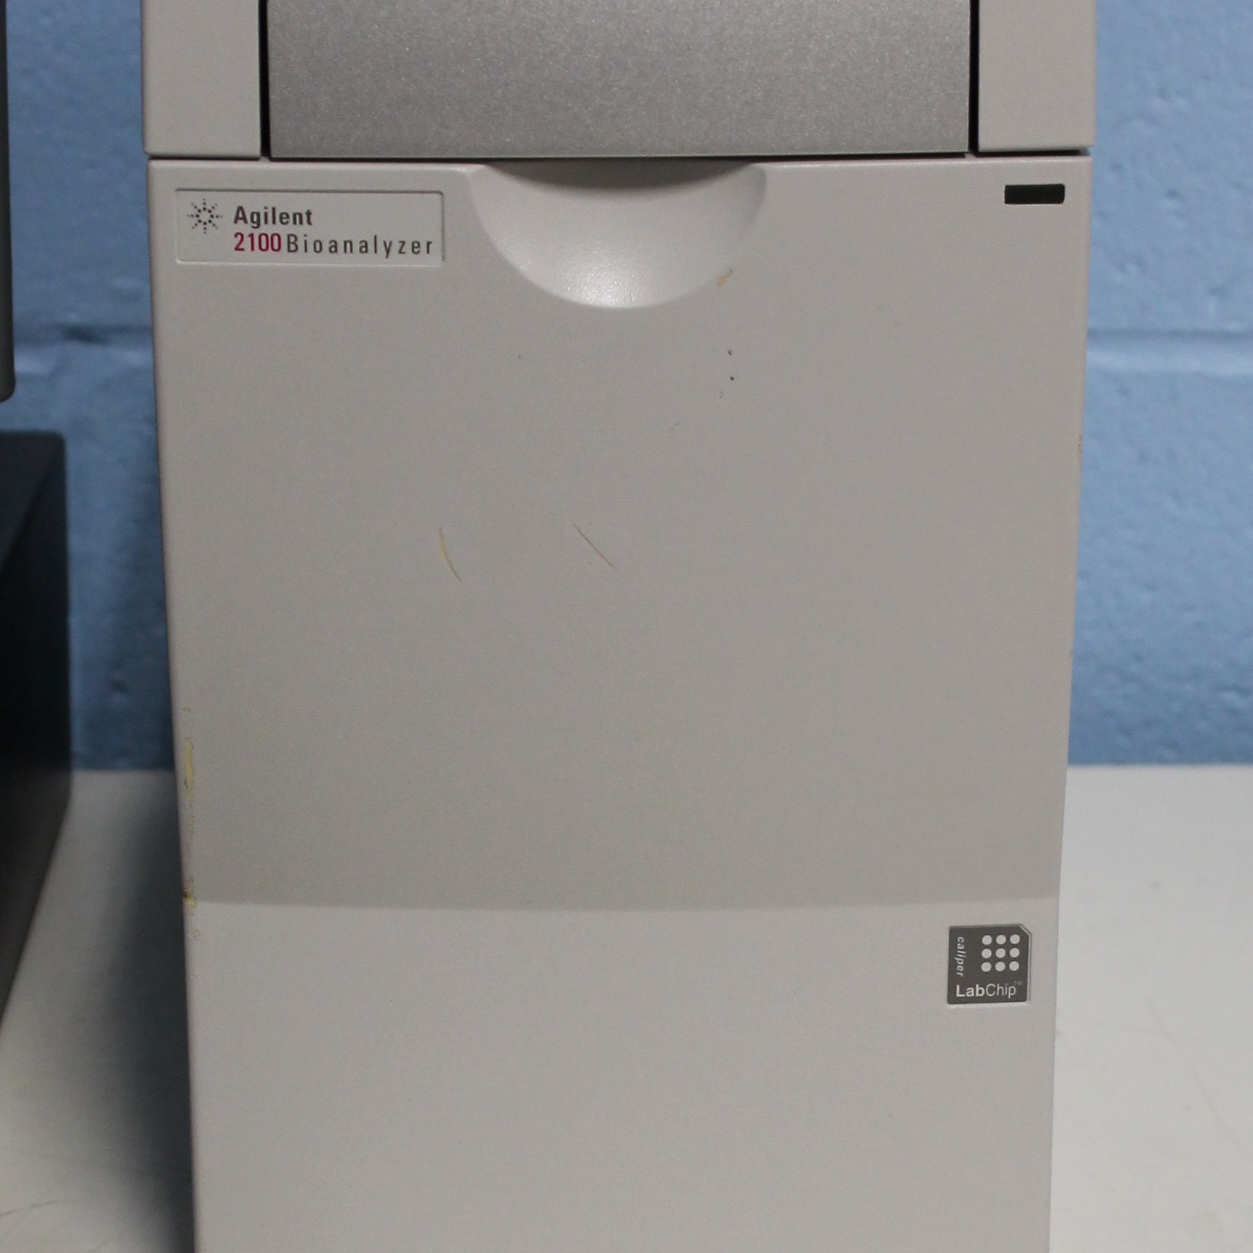 Agilent Technologies G2938A 2100 Bioanalyzer DNA Chip Reader Image